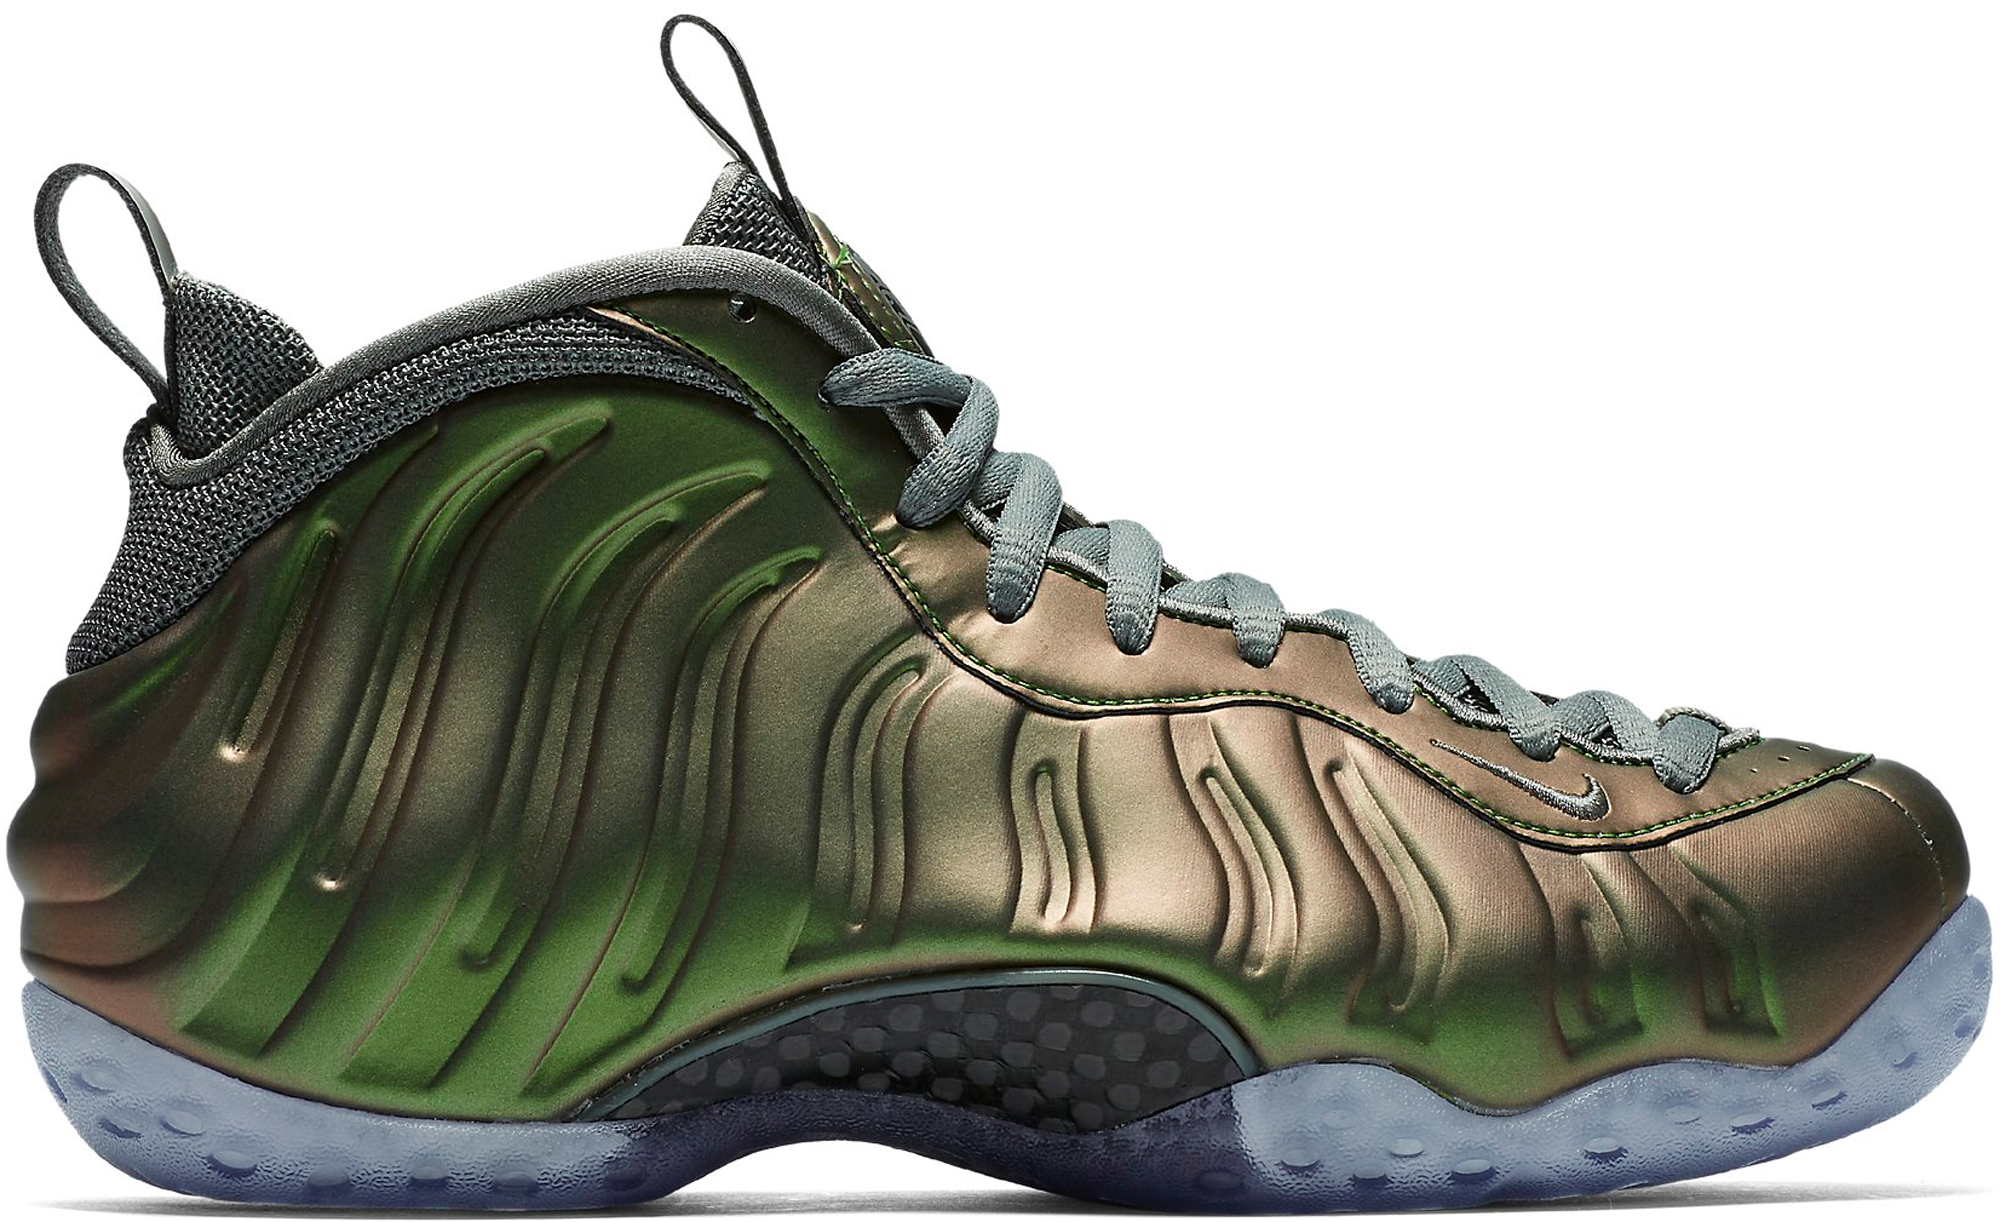 Penny Hardaway May Auction Shooting Stars Foamposite One